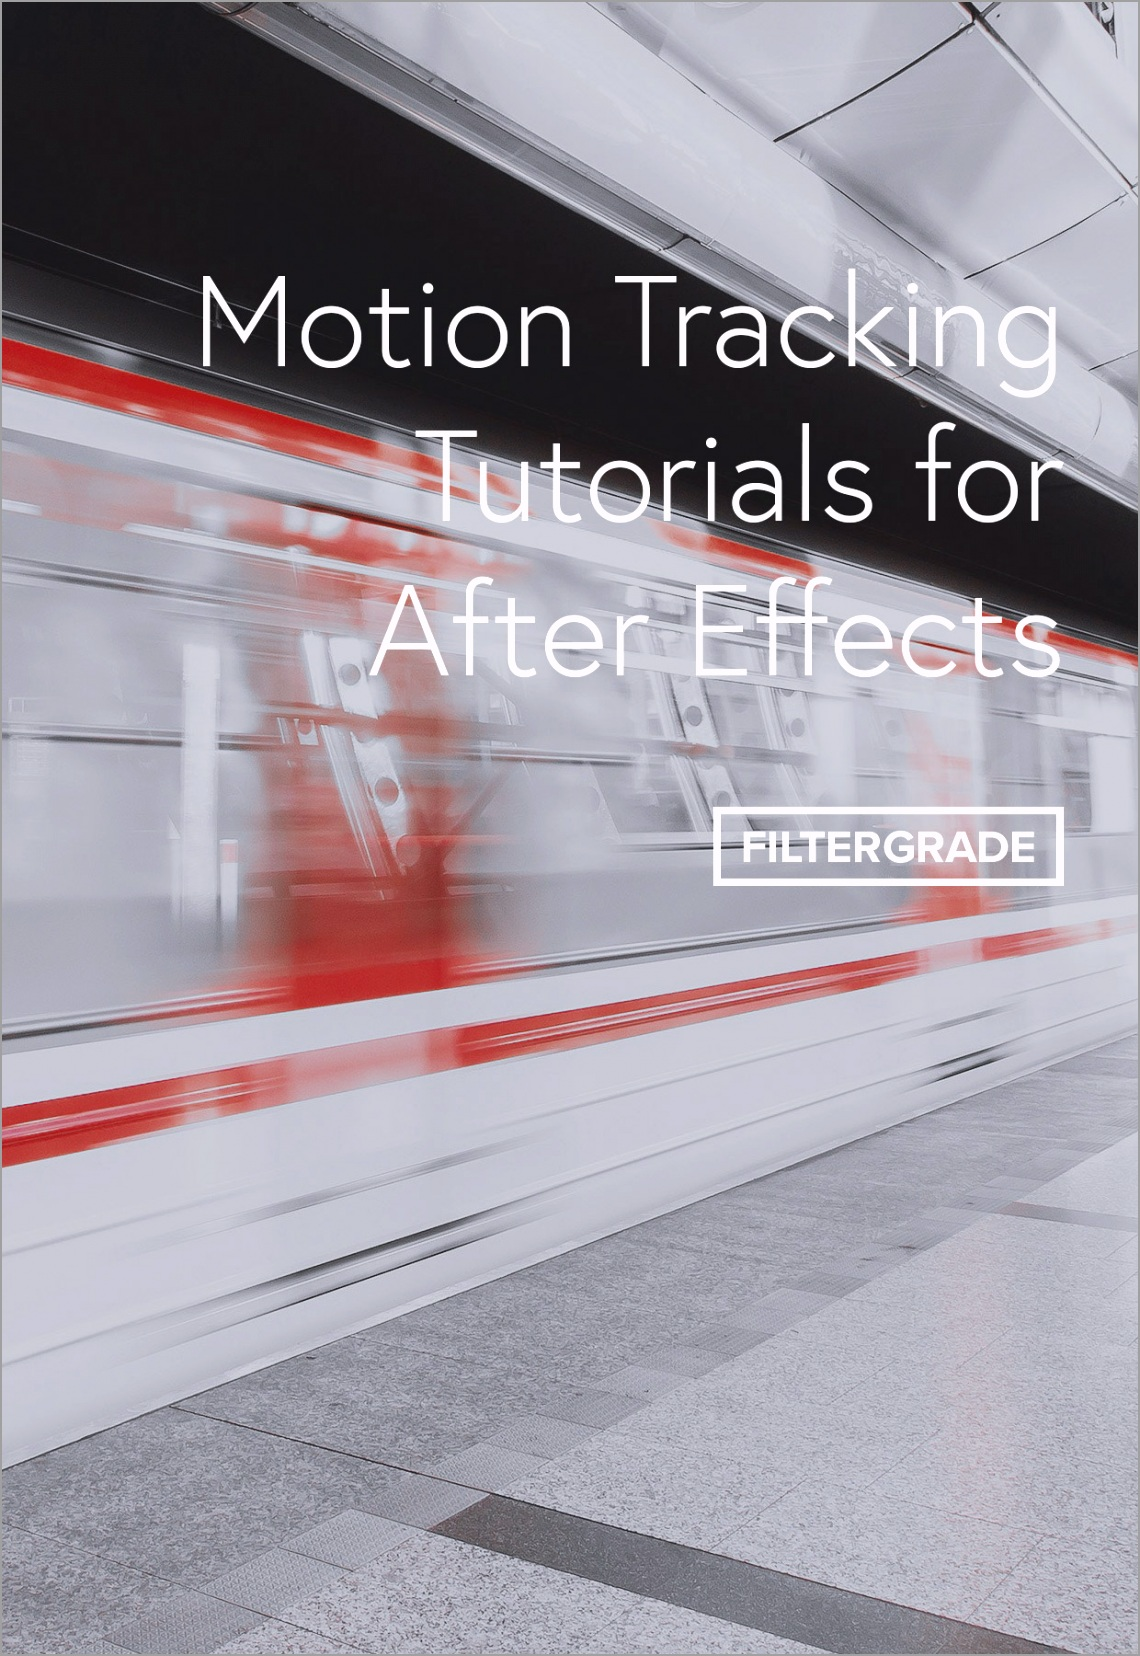 Motion Tracking Tutorials for After Effects FilterGrade rauiu